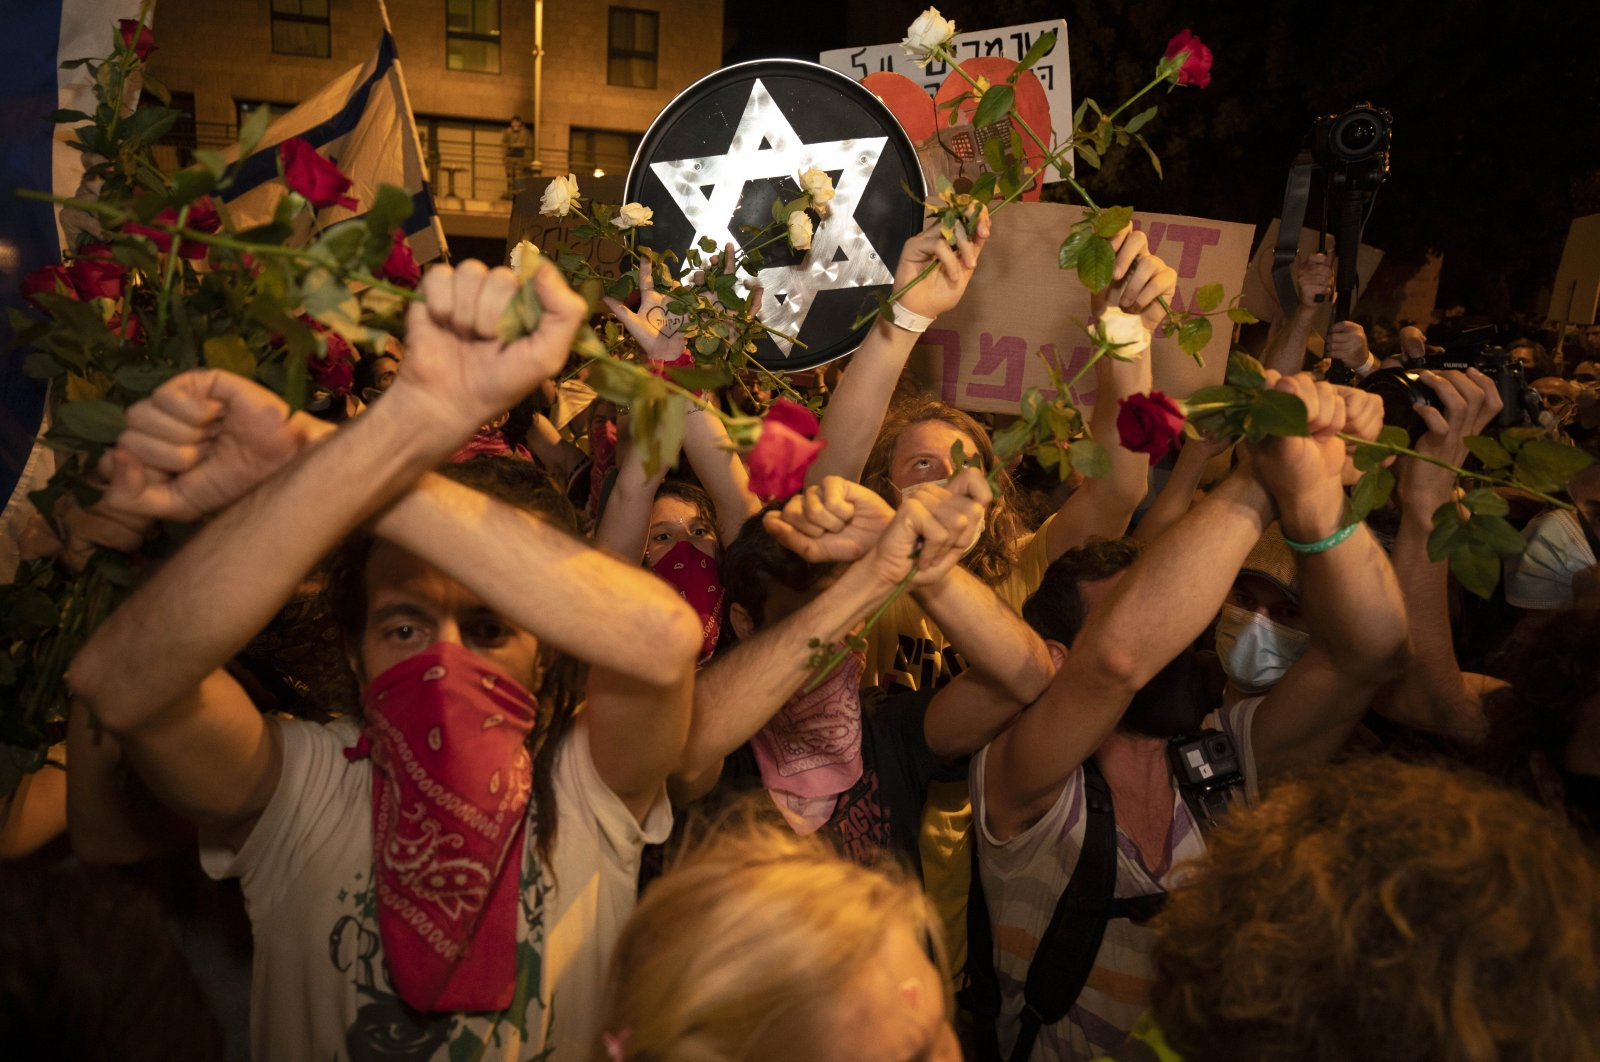 Israeli protesters hold flowers and chant slogans during a demonstration against Israeli Prime Minister Benjamin Netanyahu near the prime minister's residence in Jerusalem, Aug. 15, 2020. (AP Photo)